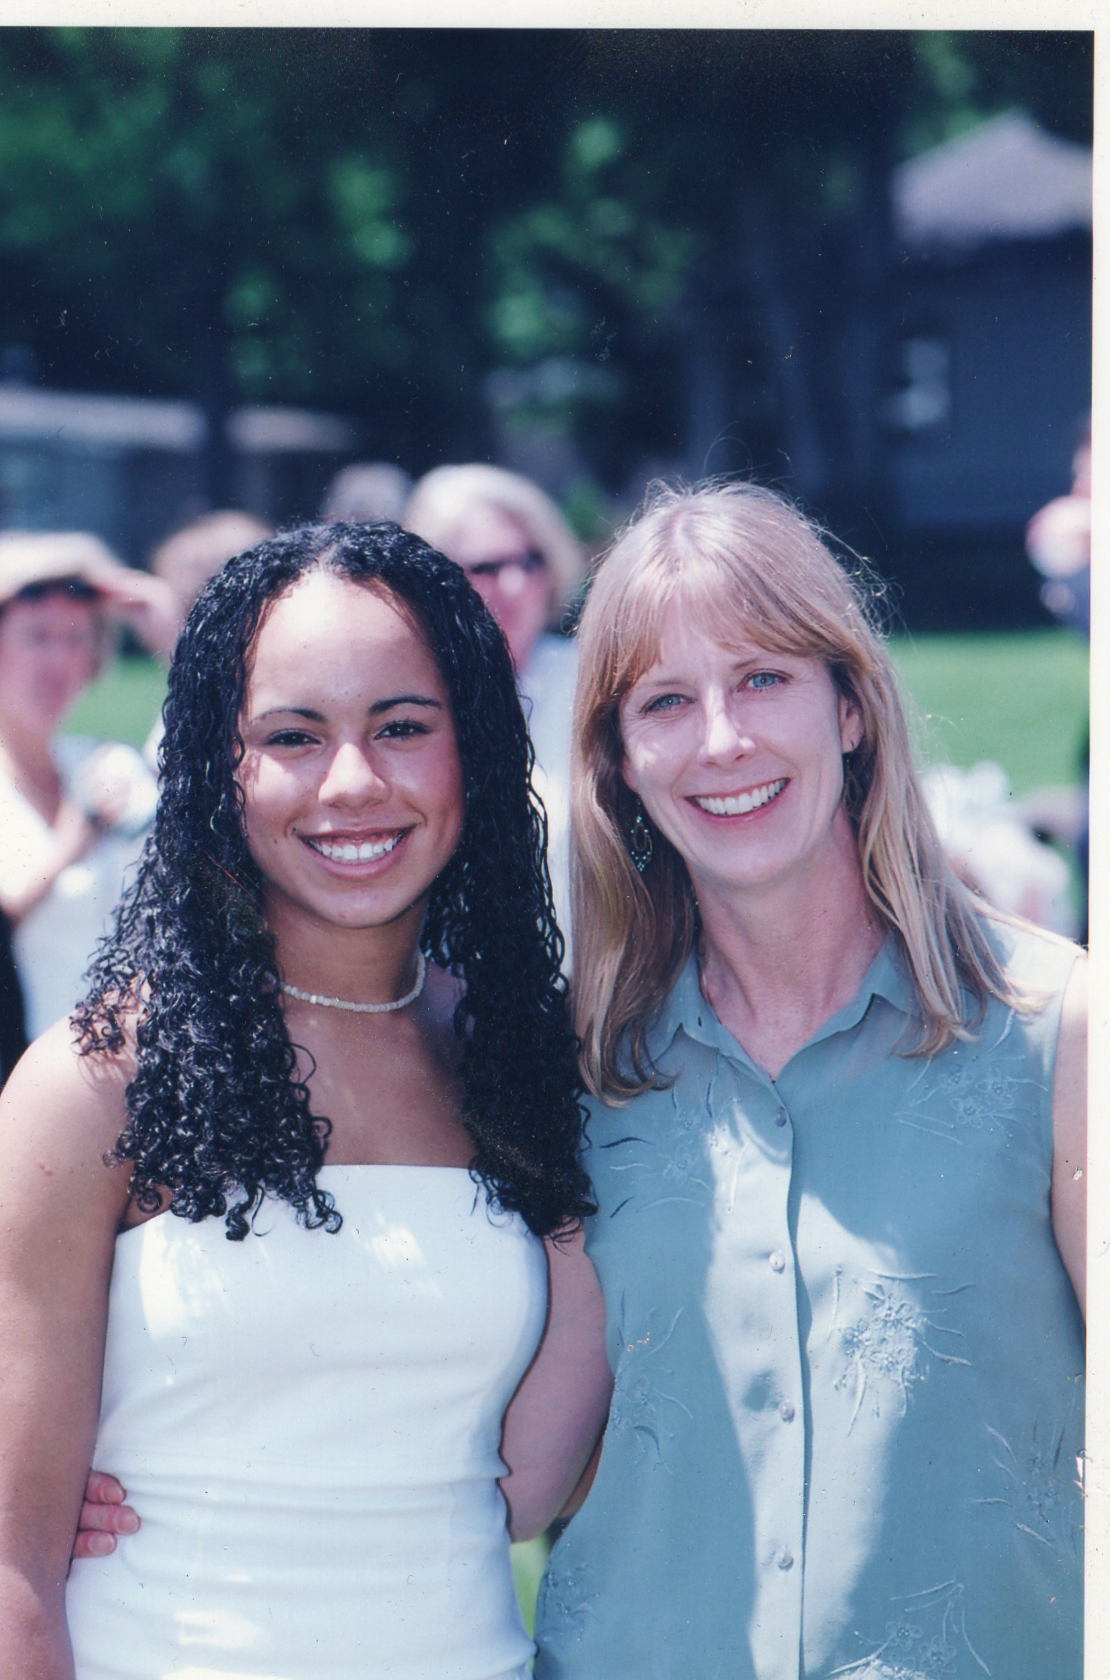 Janelle Dempsey and her Mom, Pamela Dempsey (family photo)